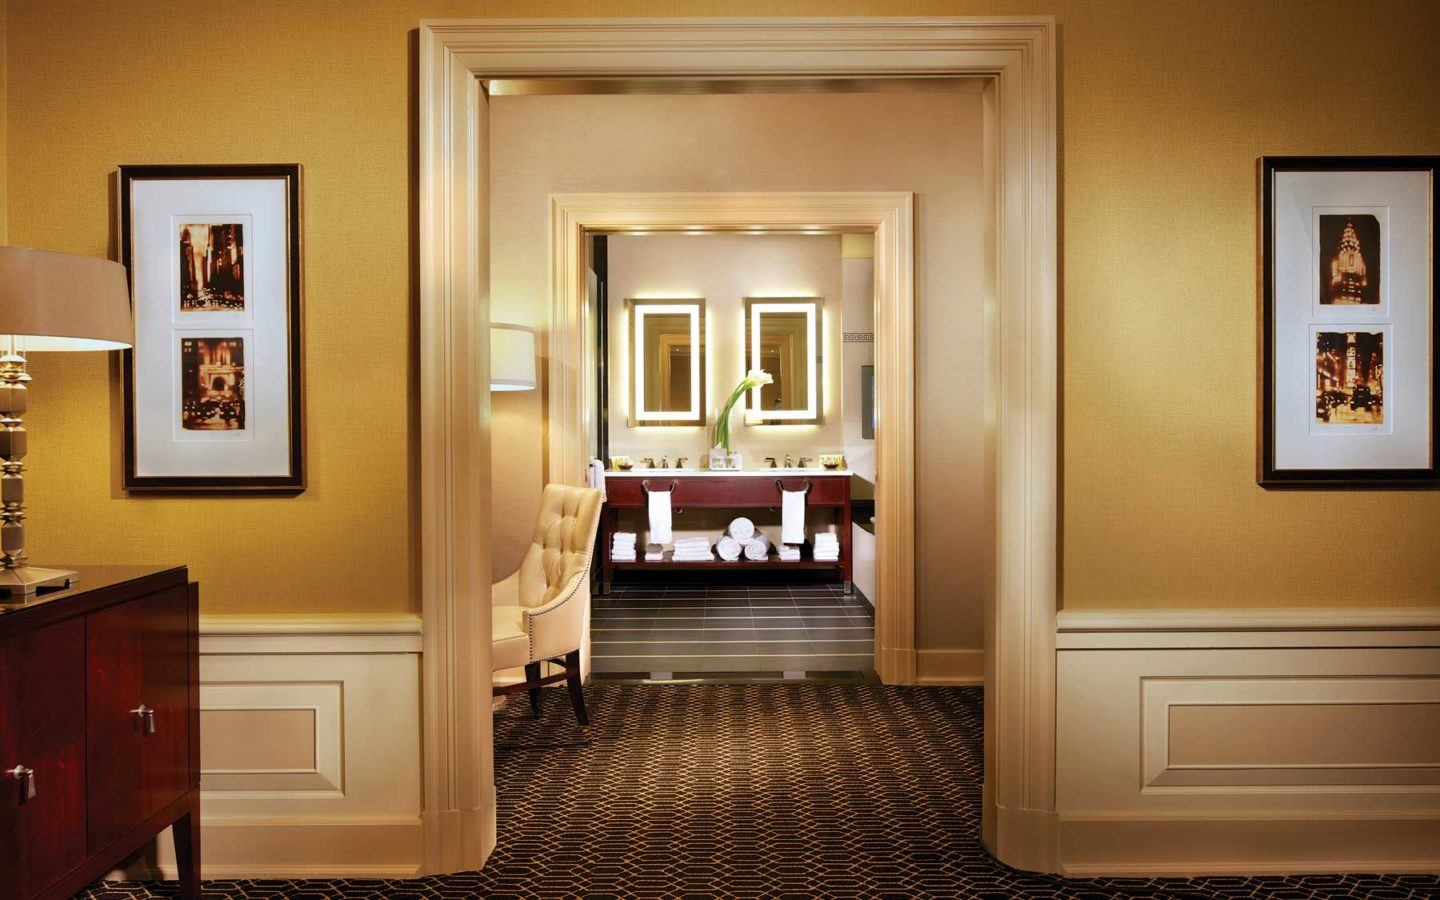 look through archways leading to the bathroom double sinks in the Barrymore Suite